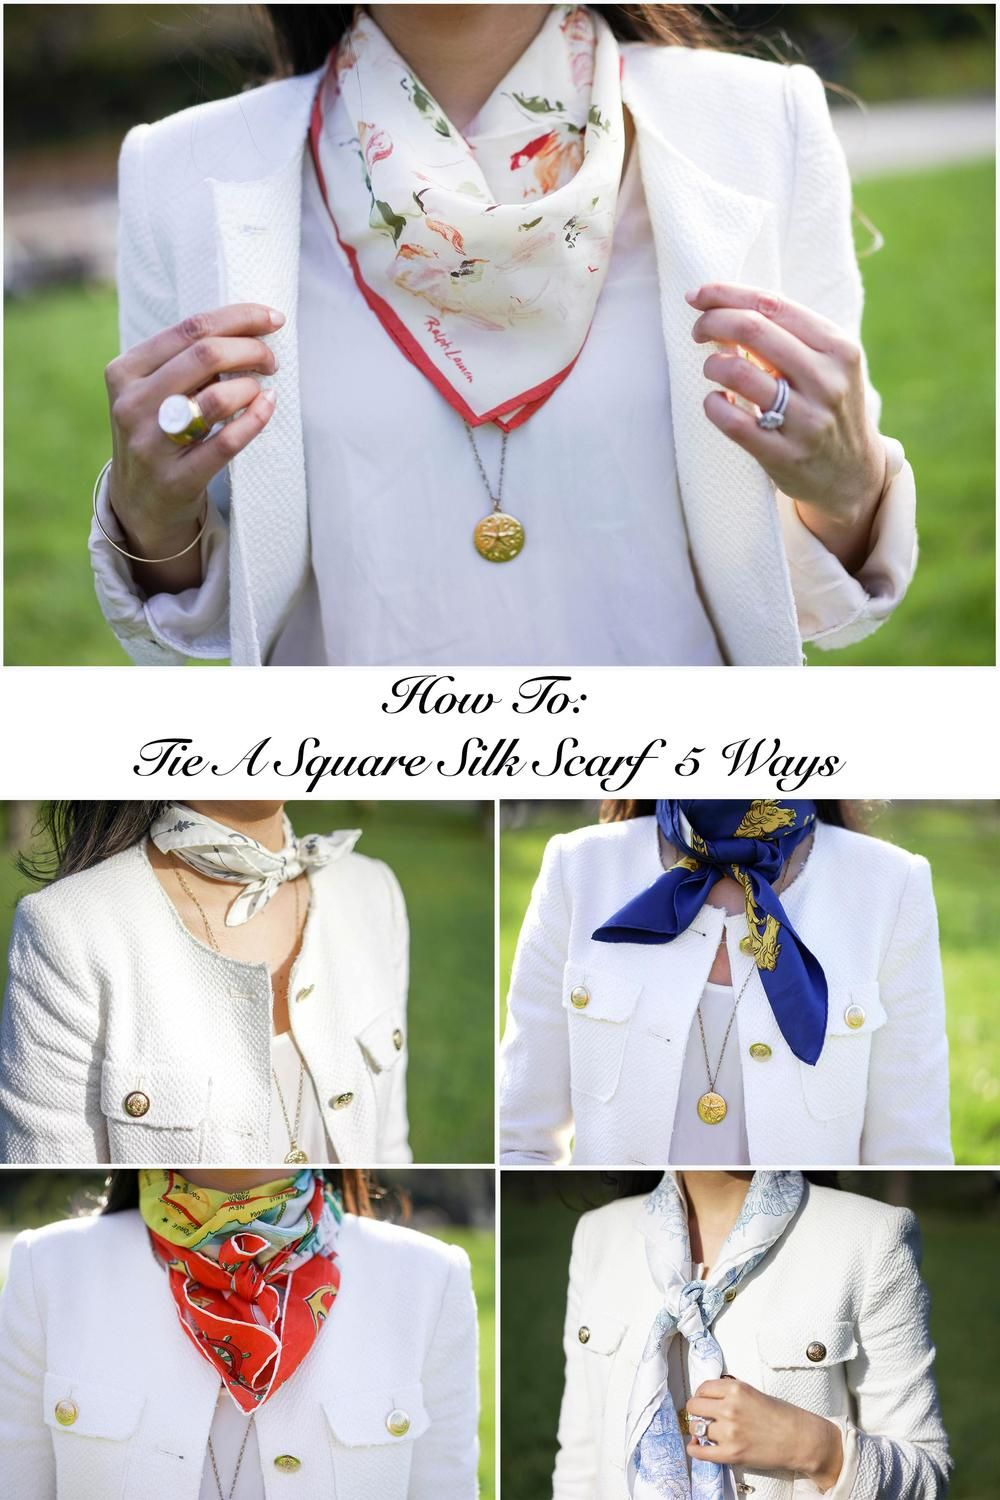 a0d5caa59b3e How To  Tie A Square Silk Scarf 5 Ways